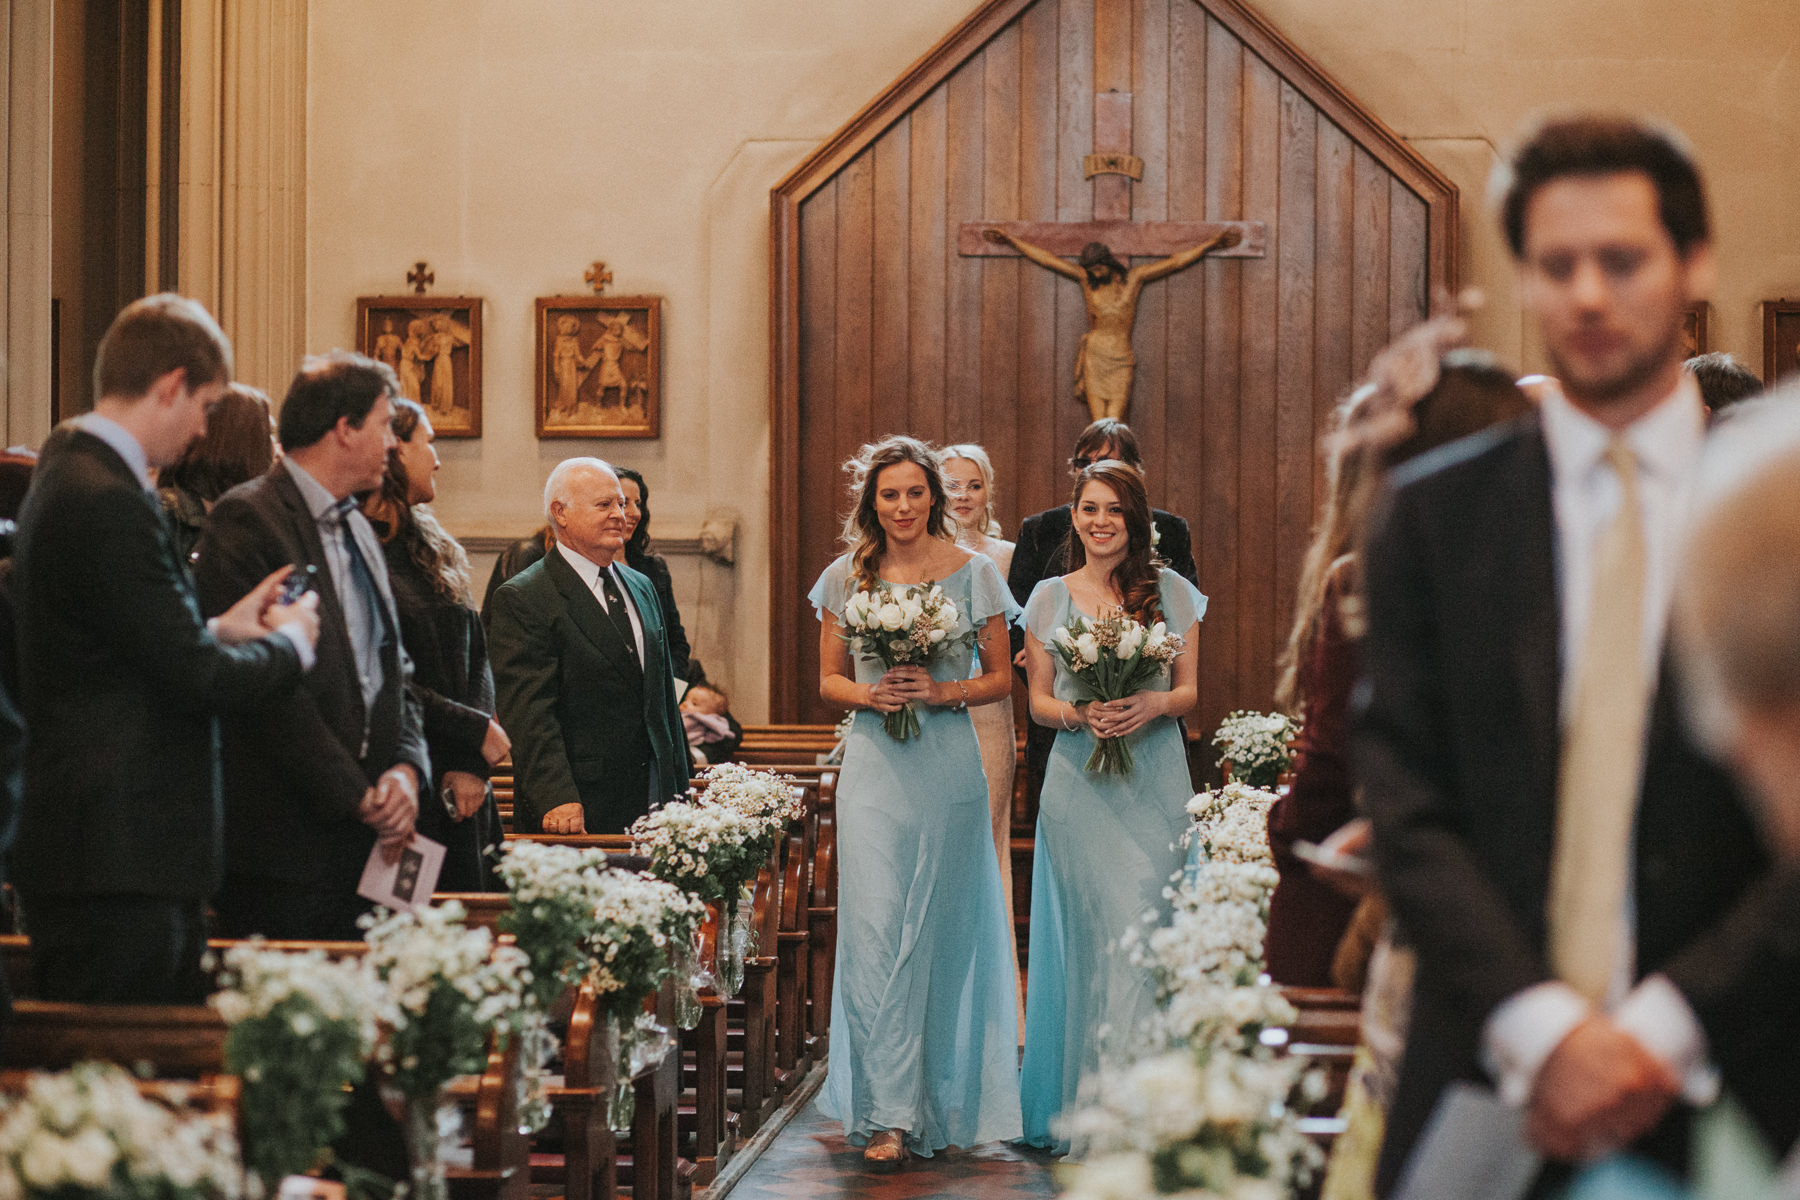 LD-168-bridesmaids-walking-down-aisle-clapham-common-catholic-church.jpg